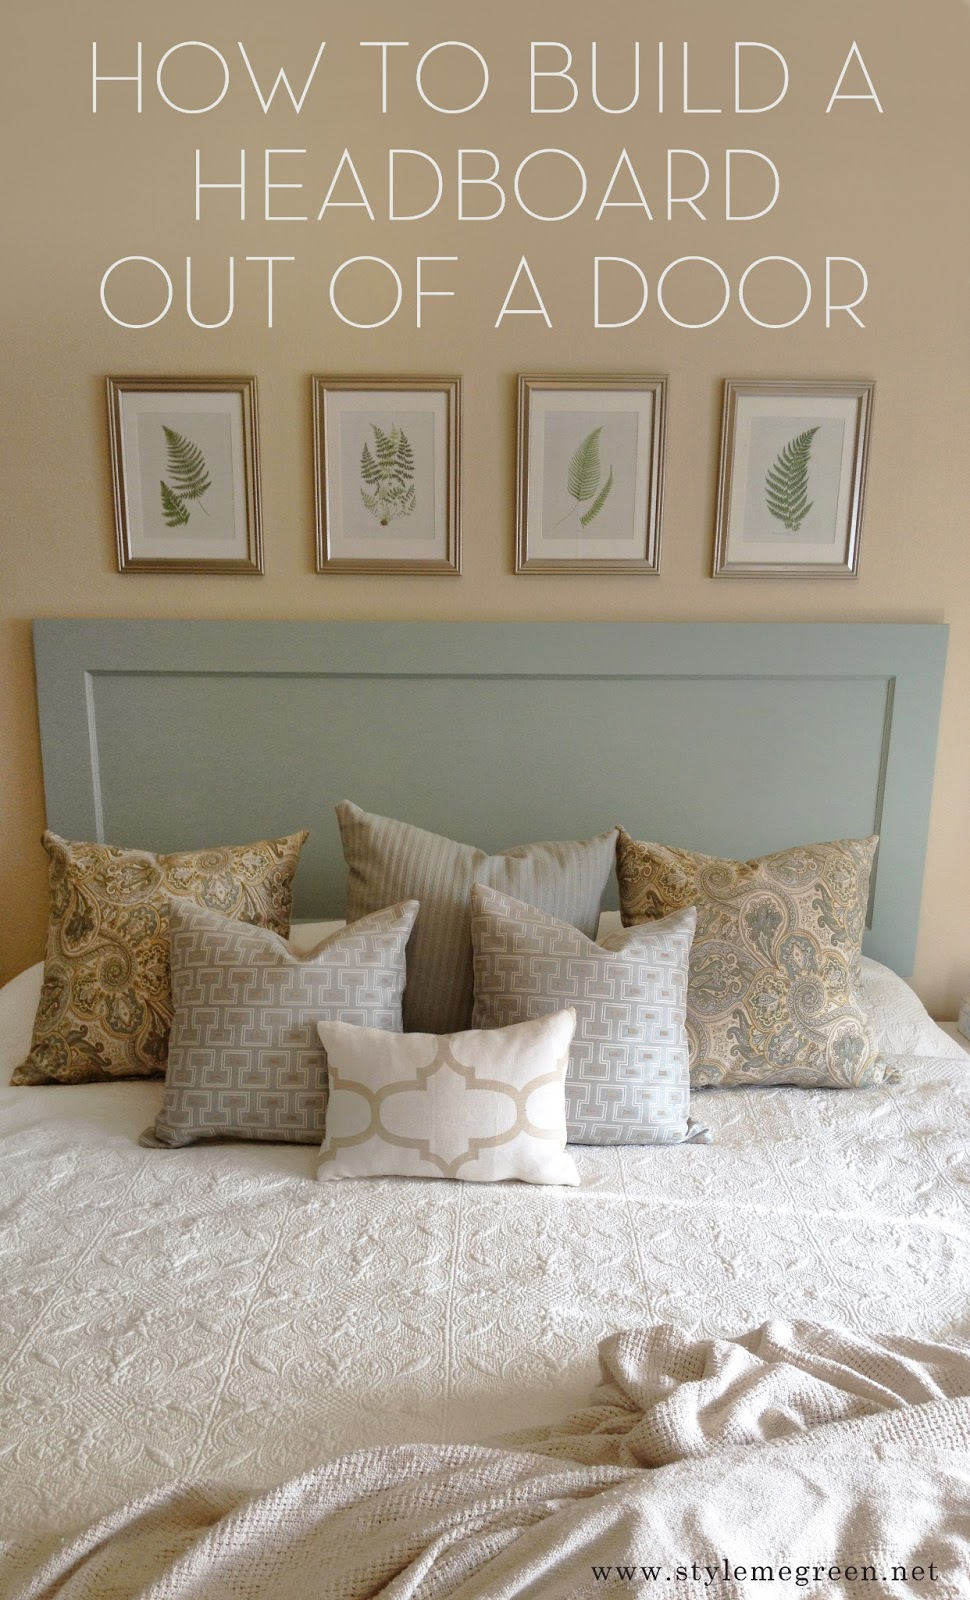 Best Kitchen Gallery: 50 Outstanding Diy Headboard Ideas To Spice Up Your Bedroom Cute of Bedroom Headboards Designs  on rachelxblog.com